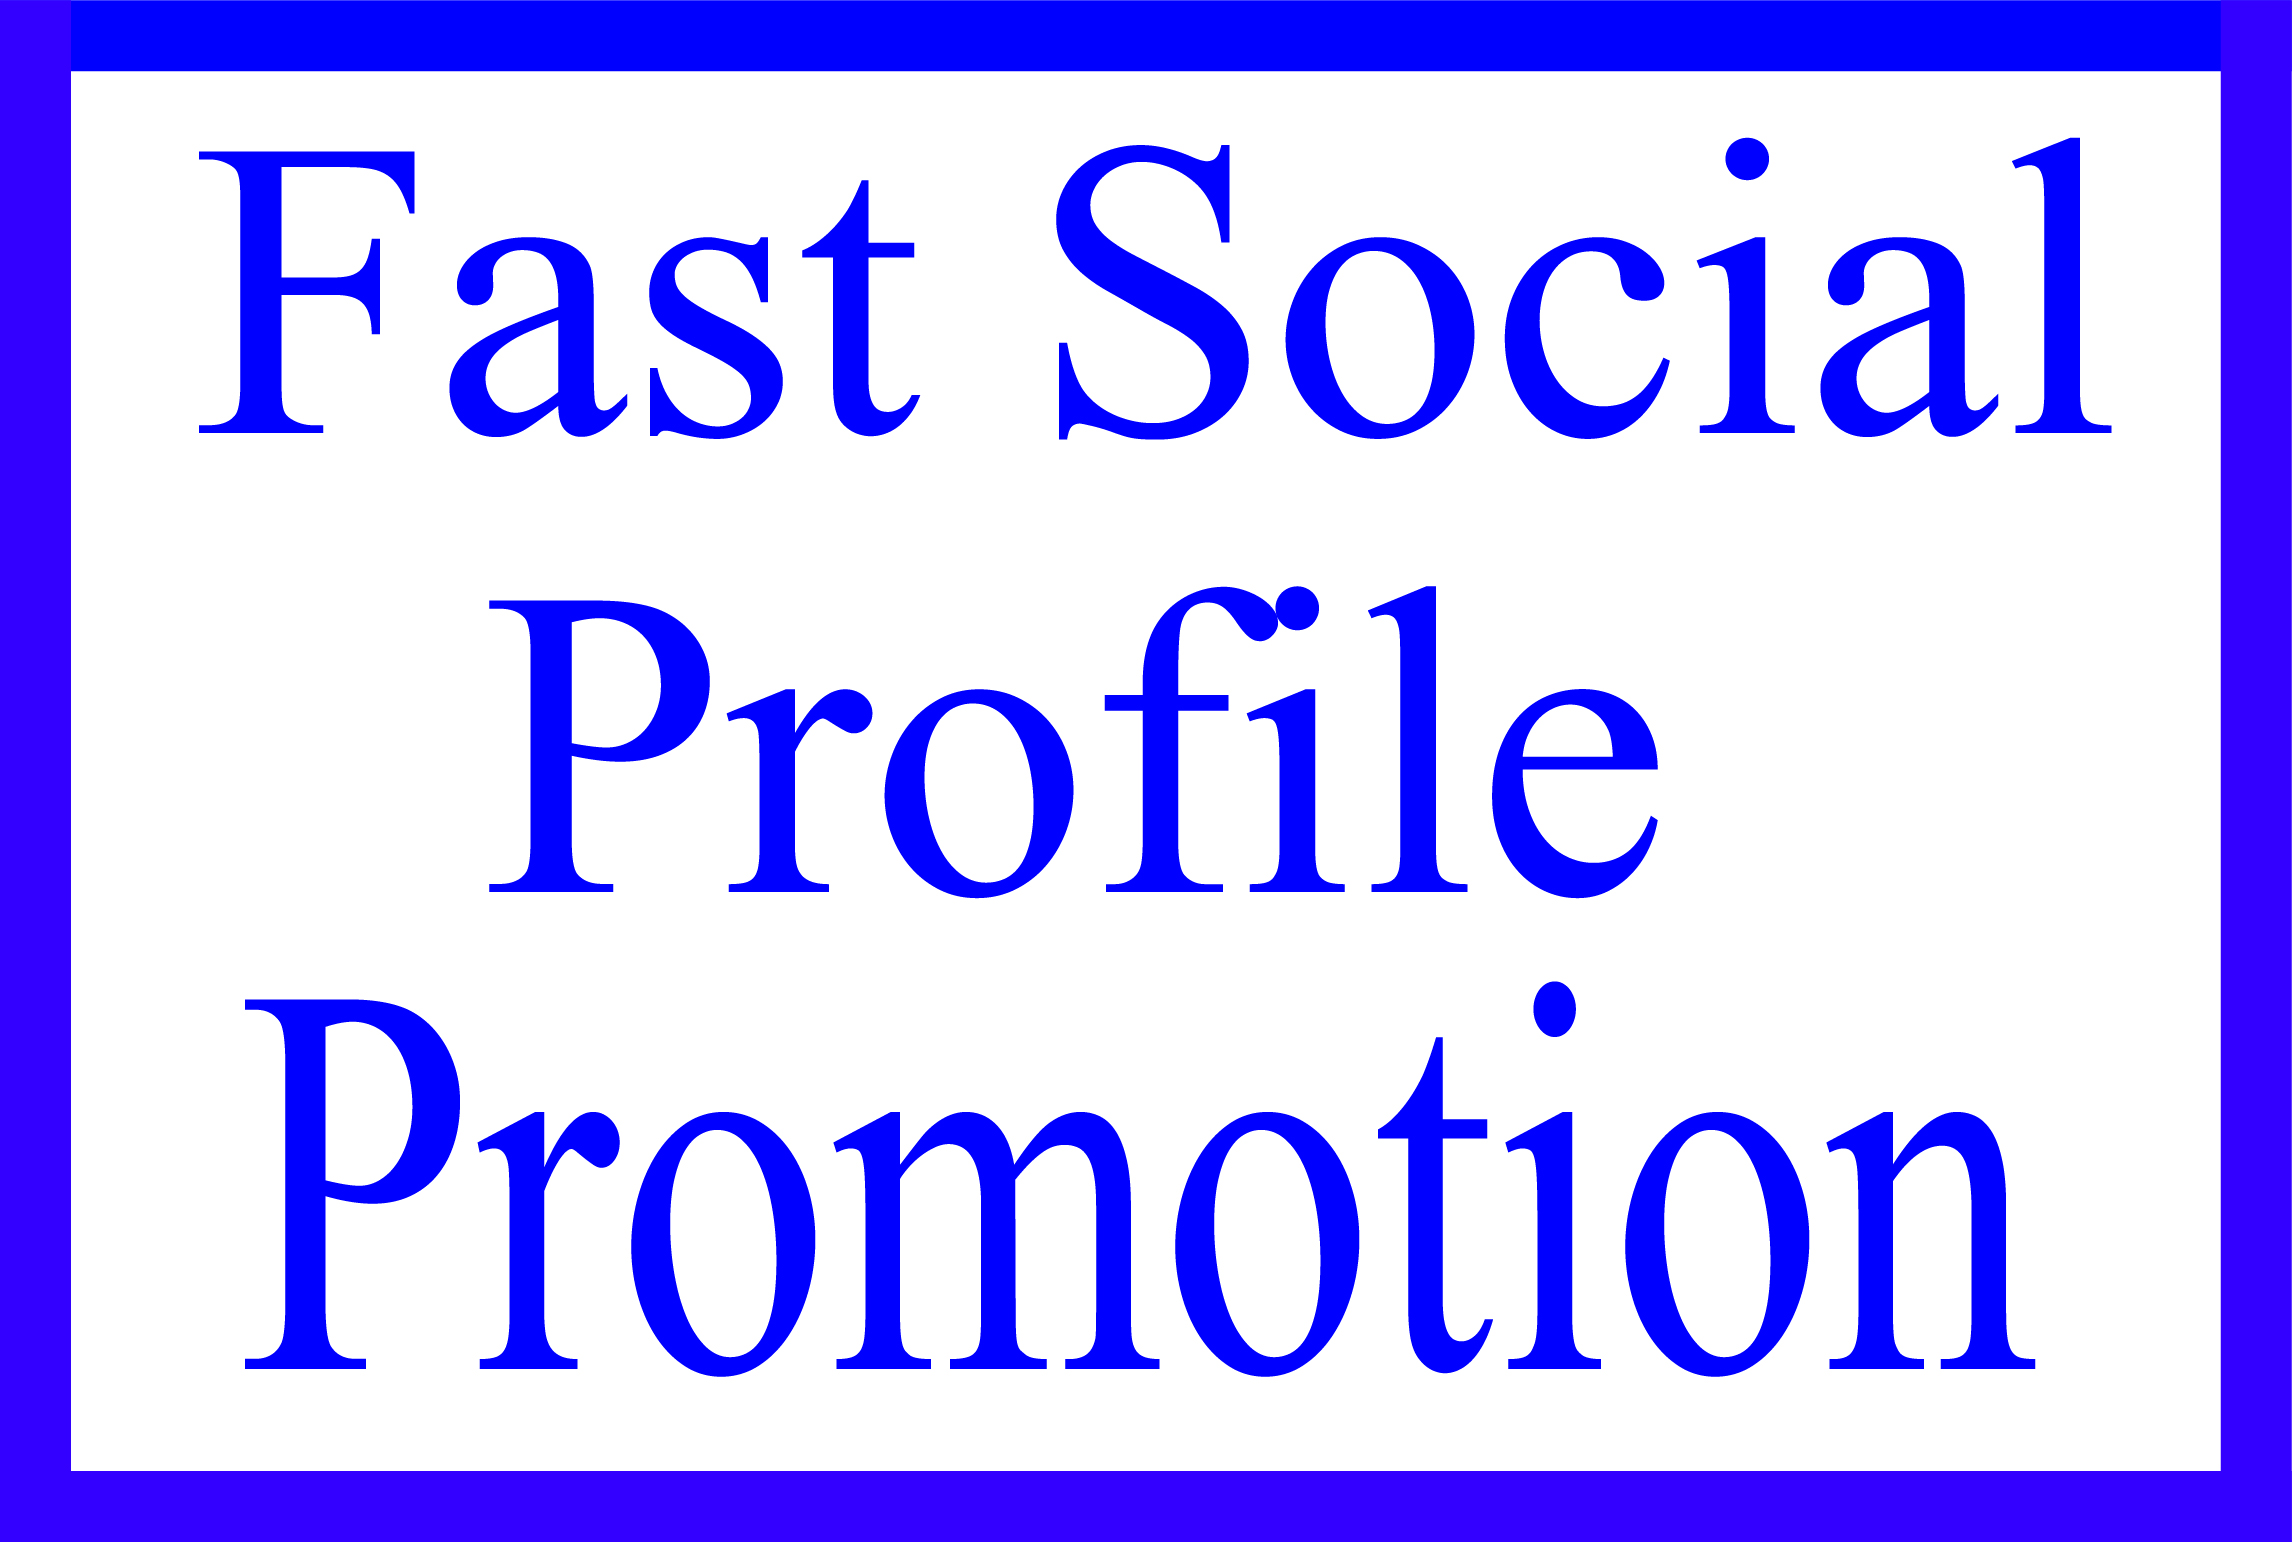 Fast Social Media Profile Promotion Service My regular Clients